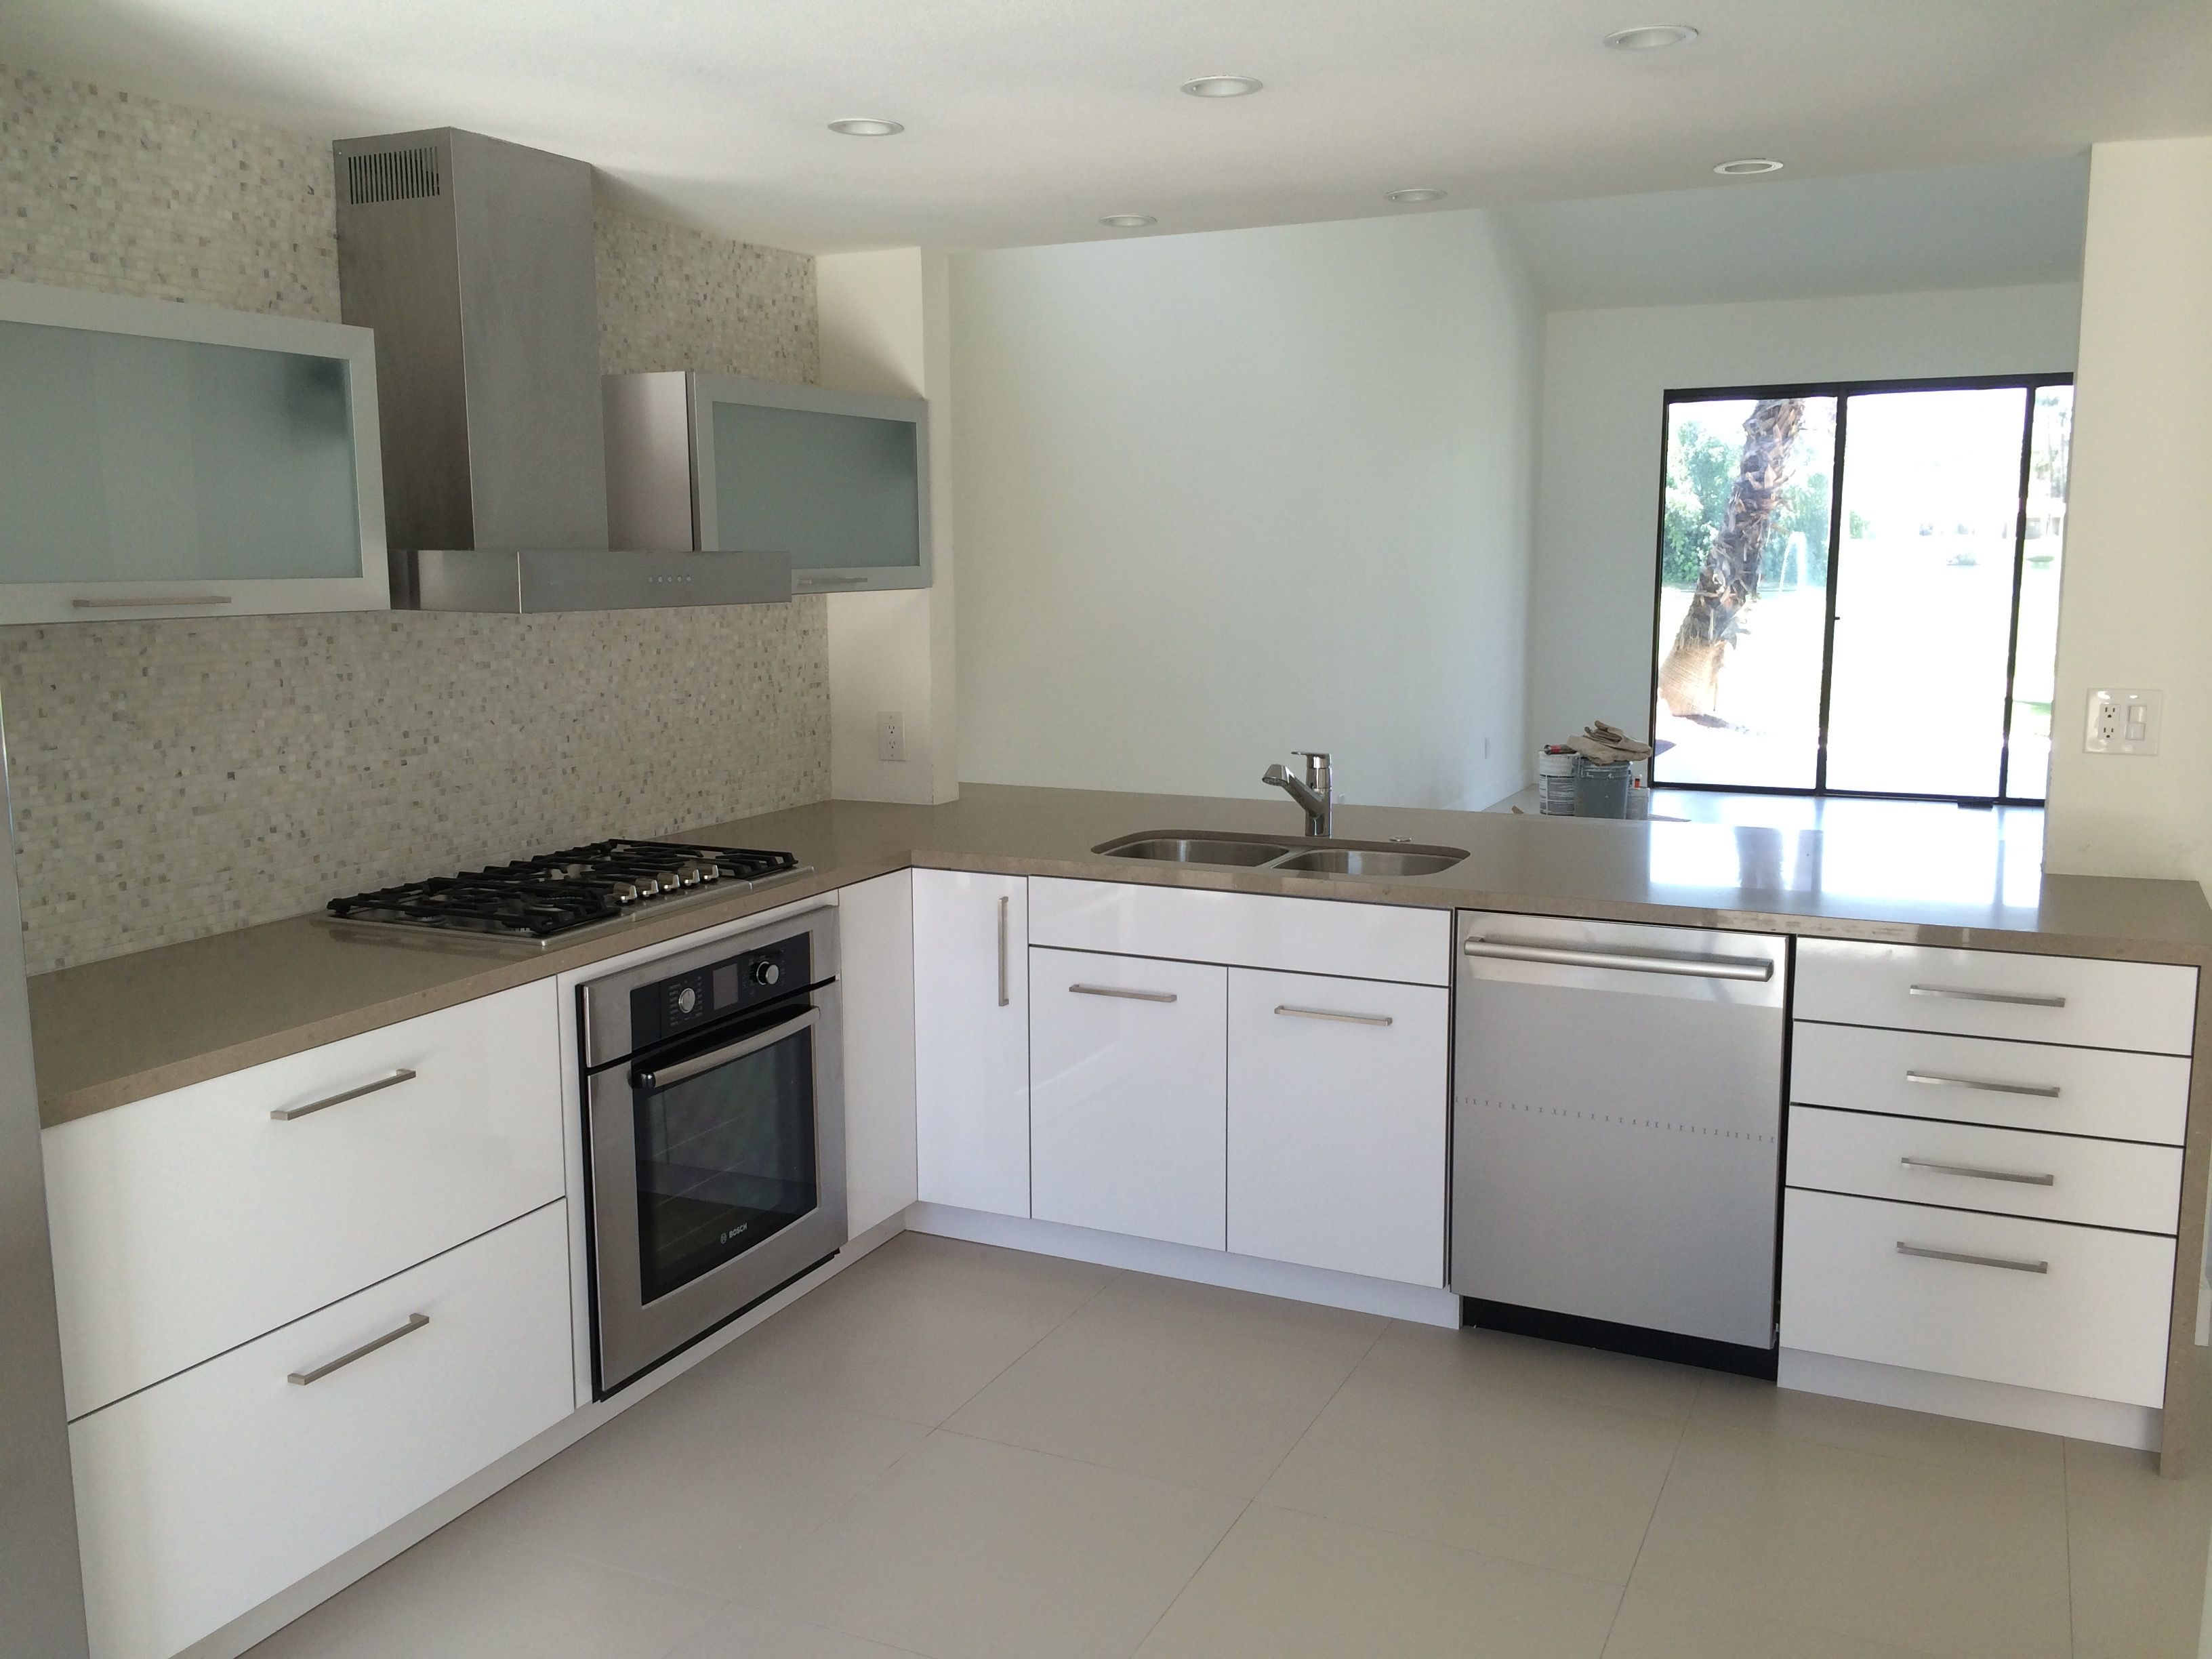 Contemporary white kitchen cabinets with tile back splash. Frosted front kitchen cabinets on either side of vent.